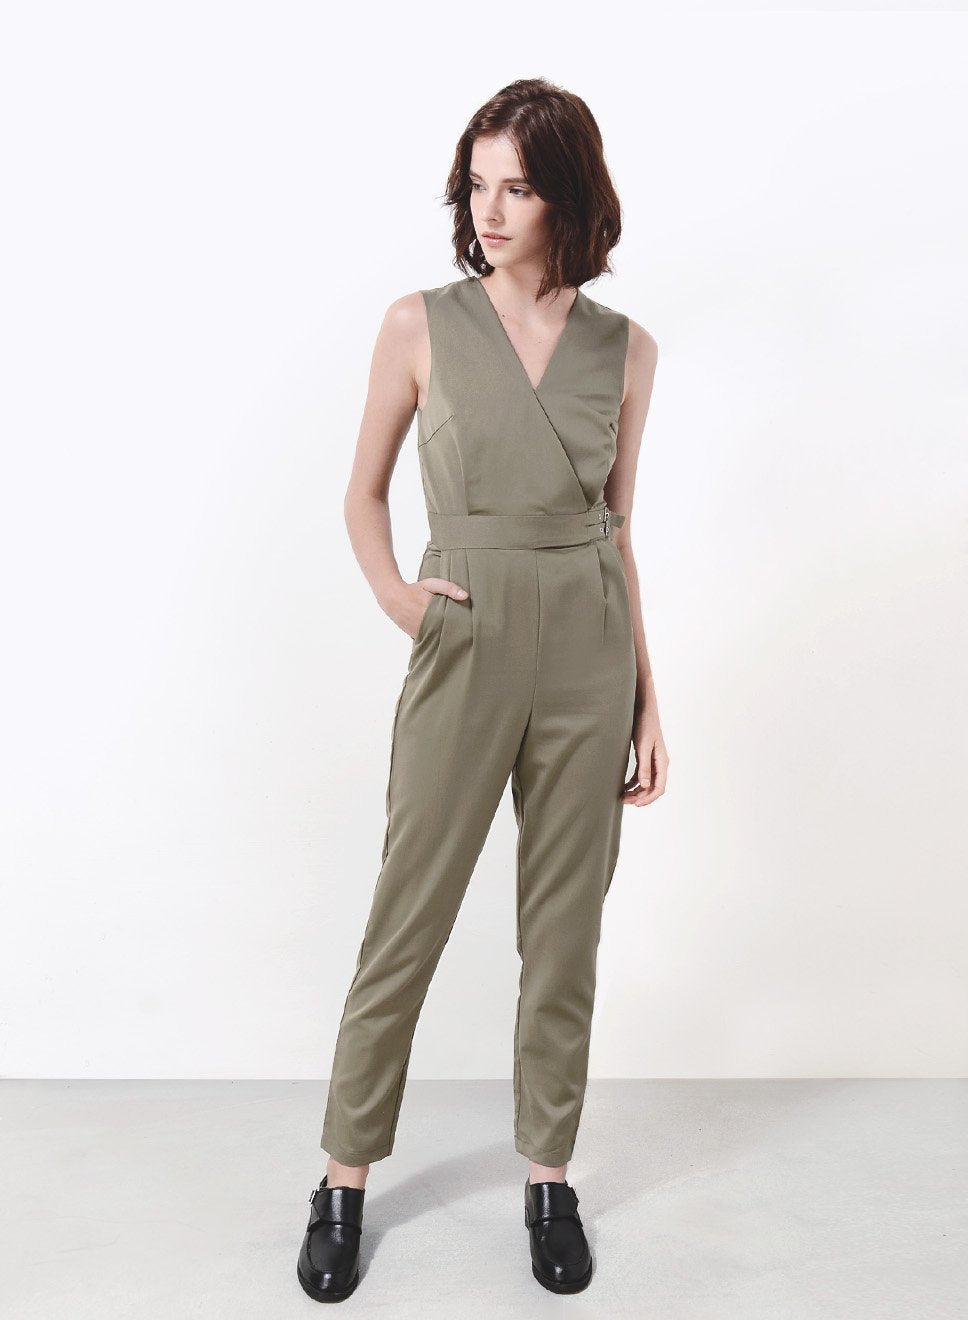 STUDIO Buckle Sides Jumpsuit (Olive) - And Well Dressed